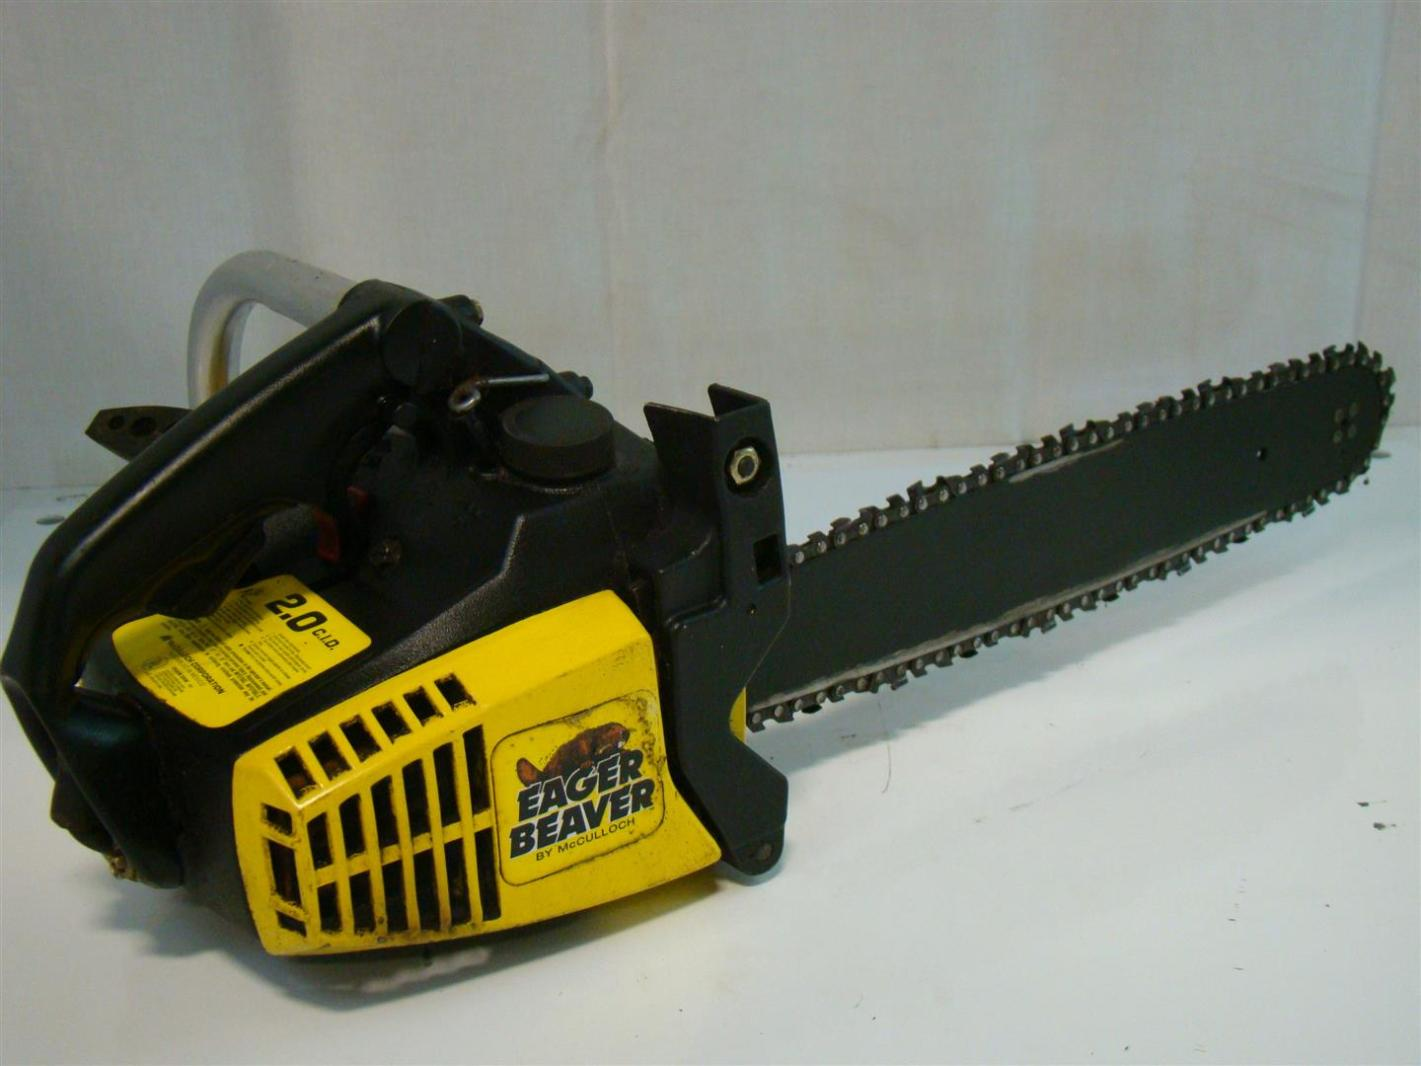 Eager Beaver Electric chainsaw manual